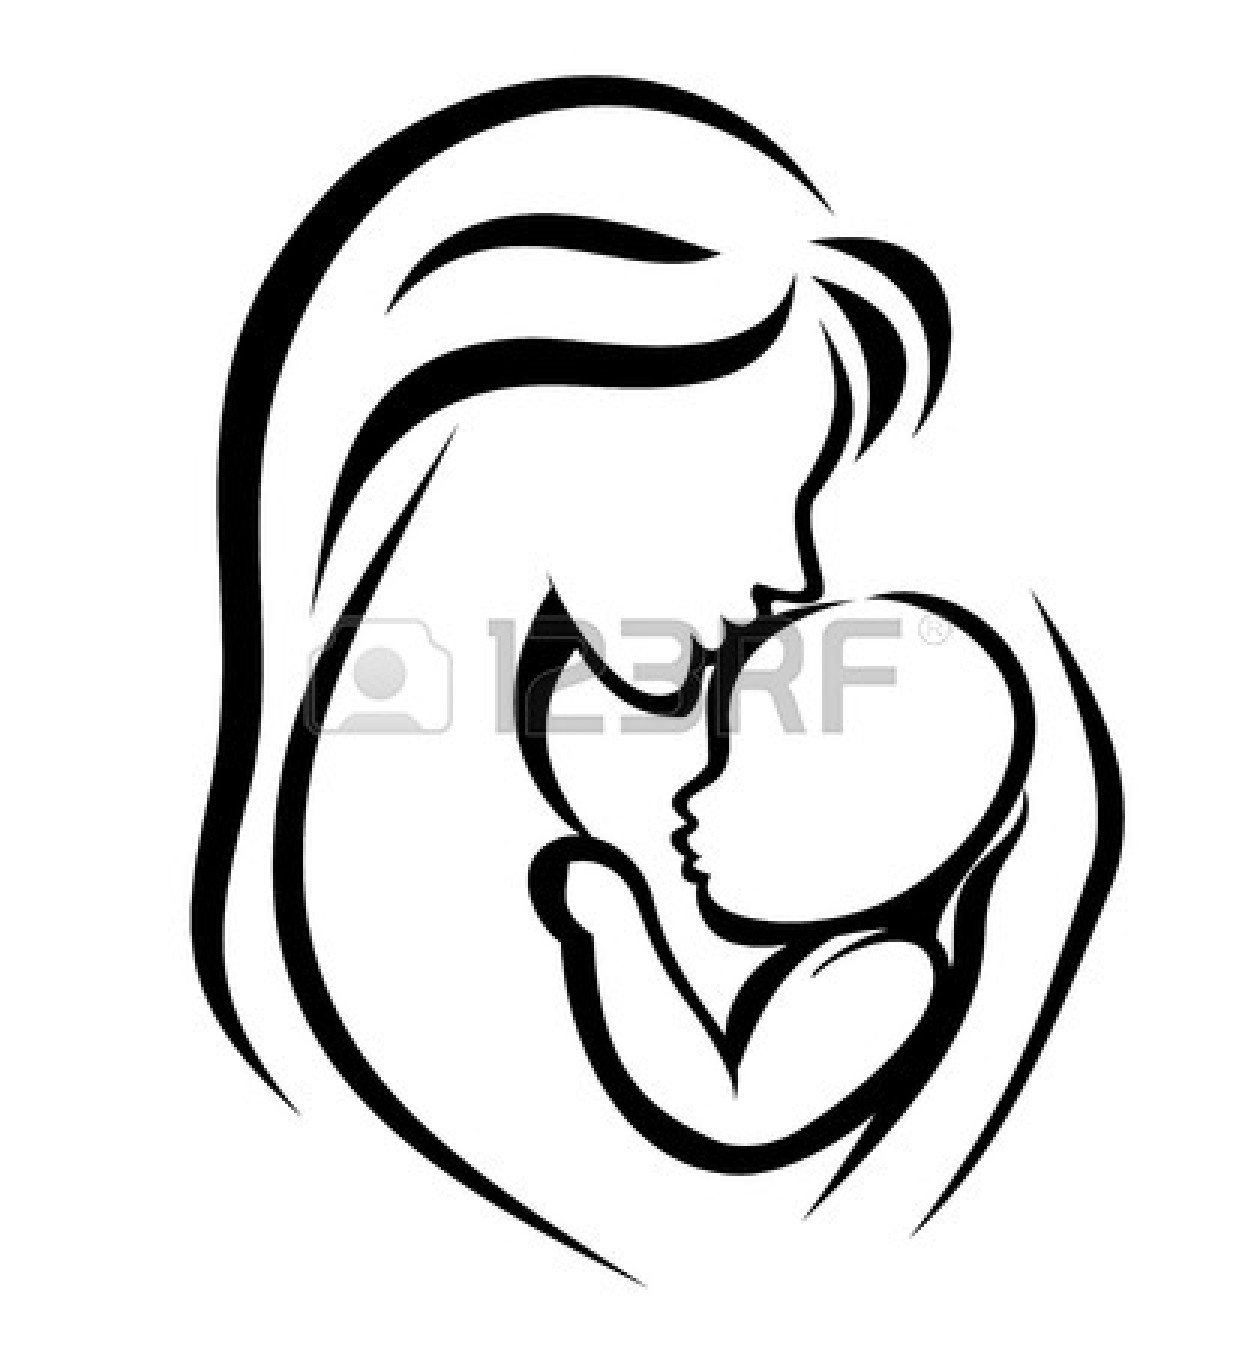 Mama mit baby clipart image freeuse stock Mother giving away baby clipart - ClipartFox image freeuse stock